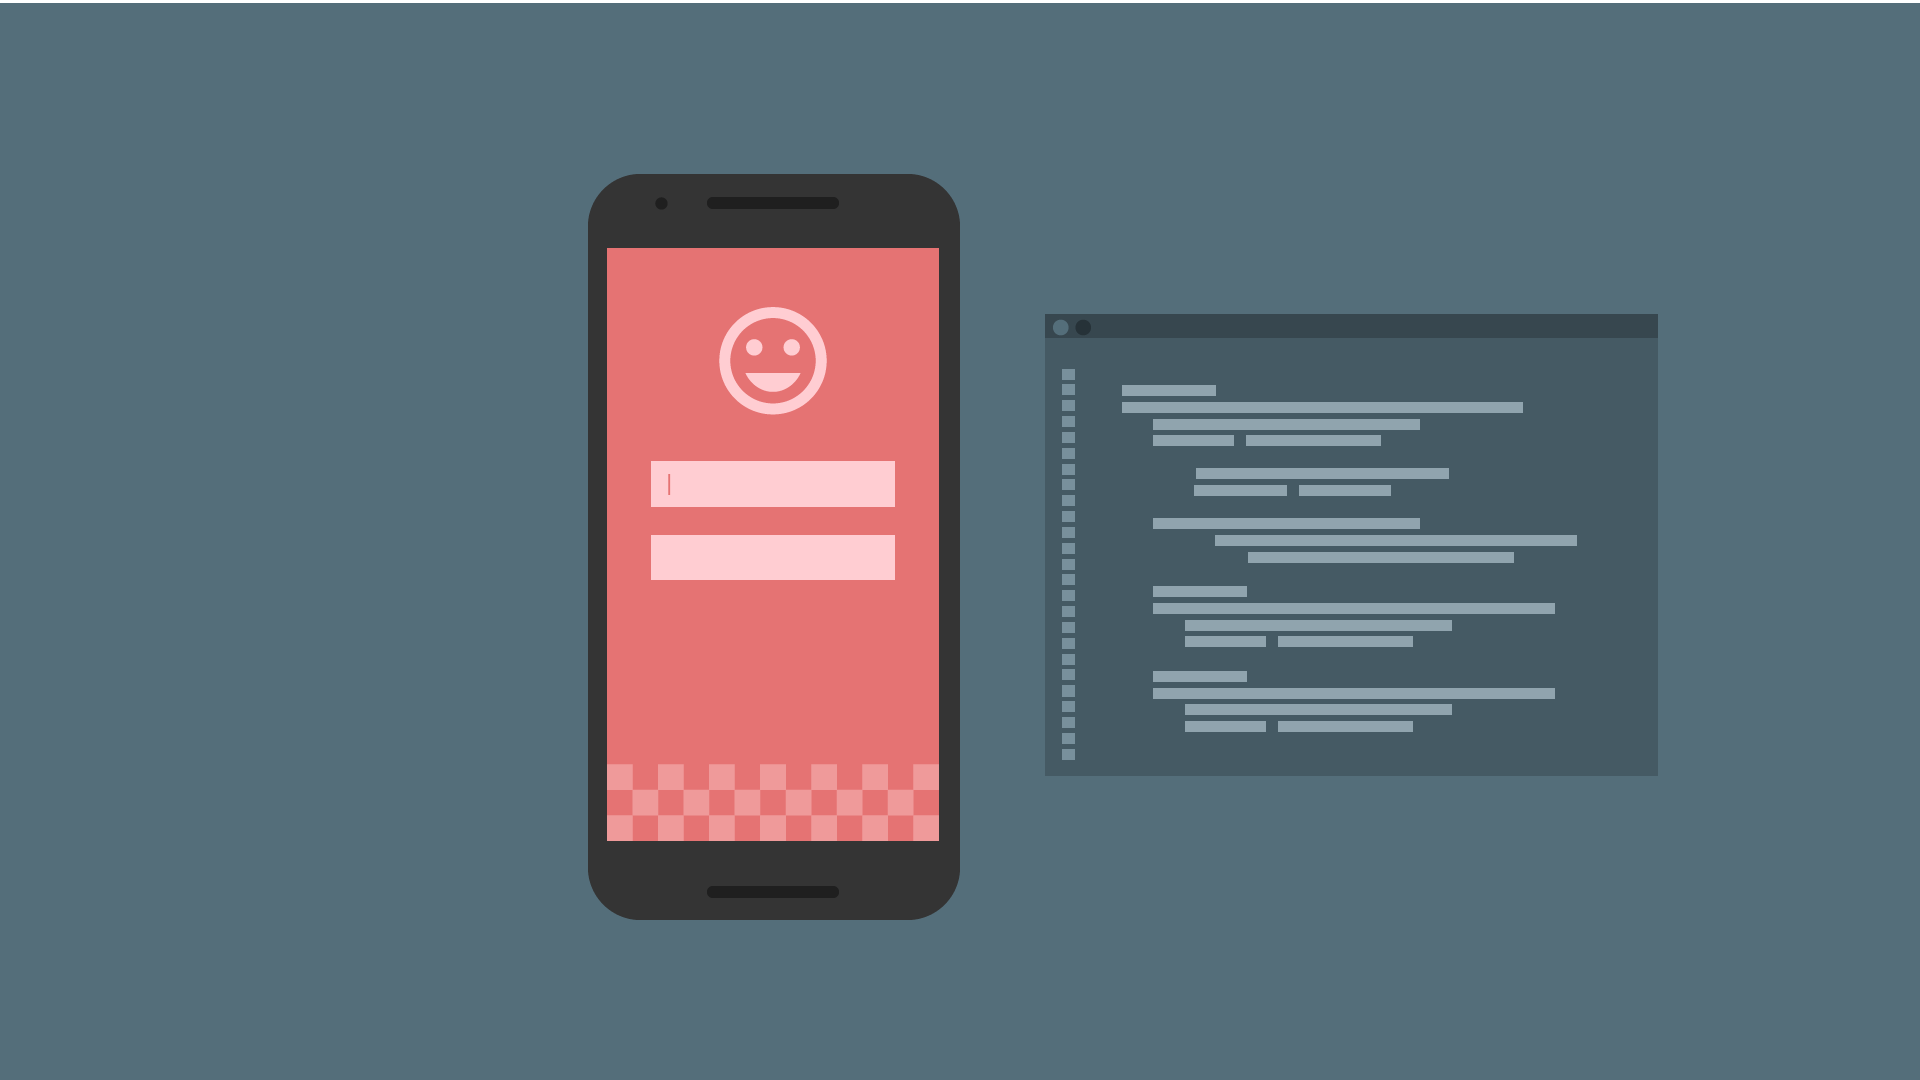 Illustration of mobile device